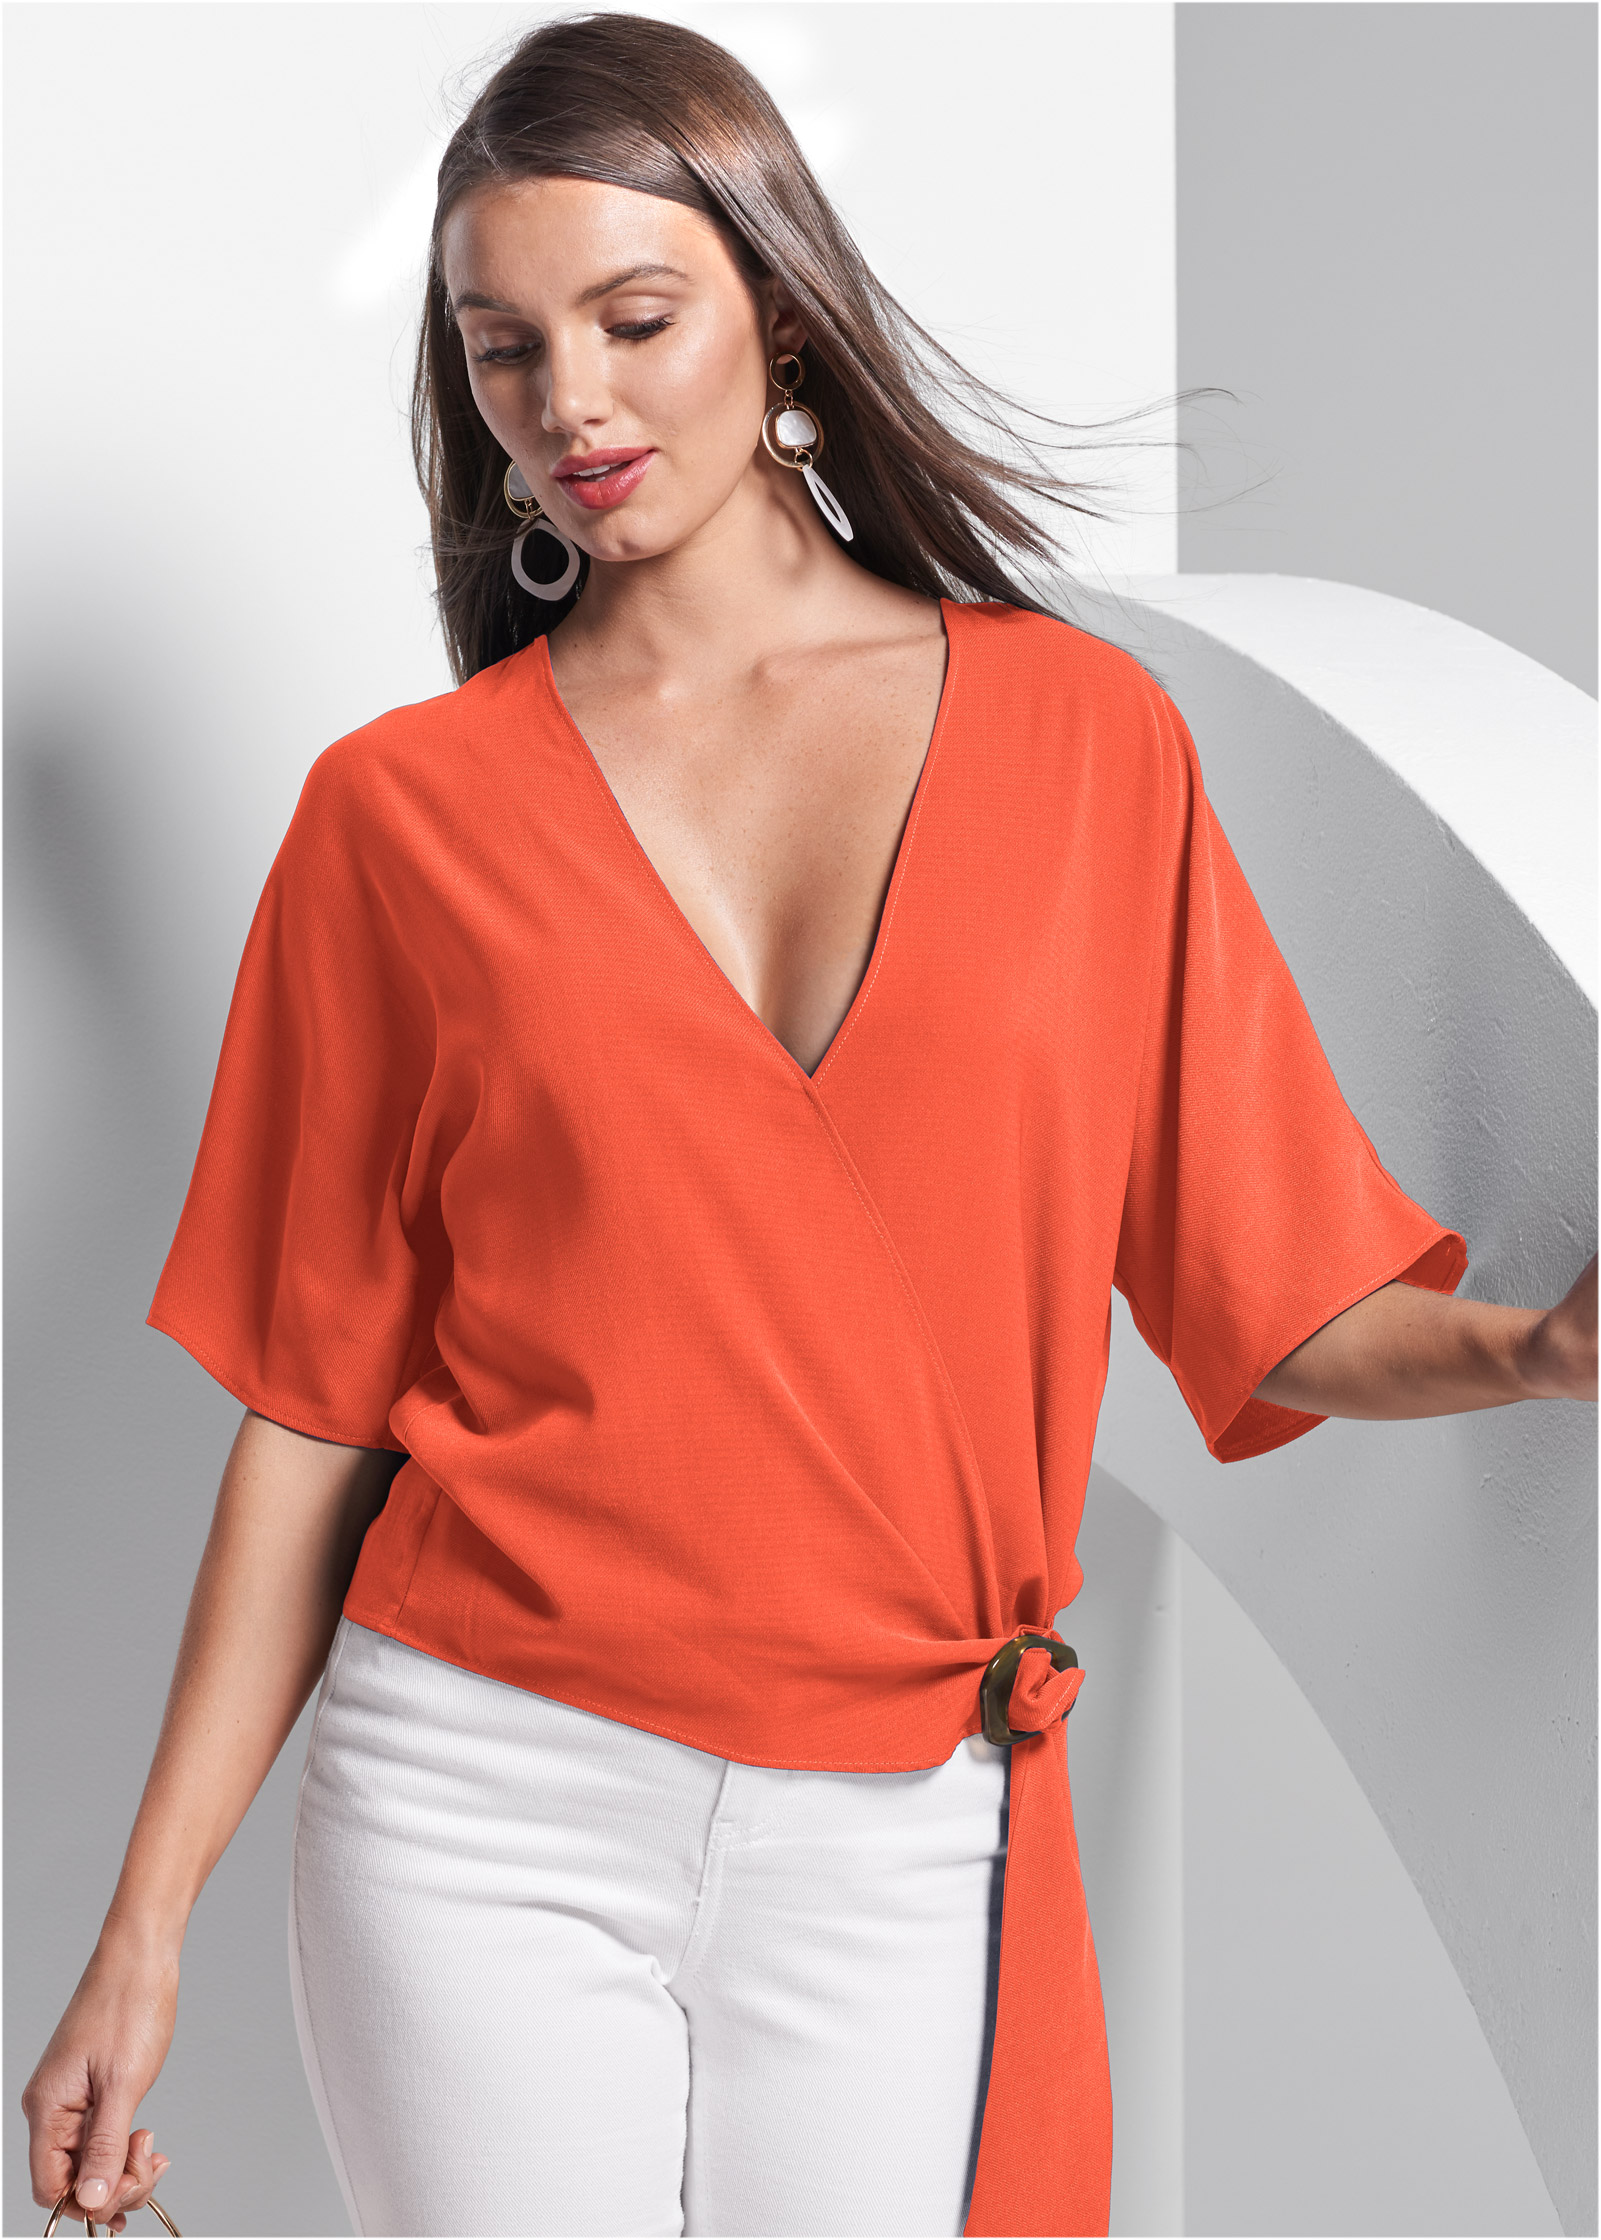 NEW Size 16 18 Colour Block Cold Shoulder Orange Black White Top Blouse